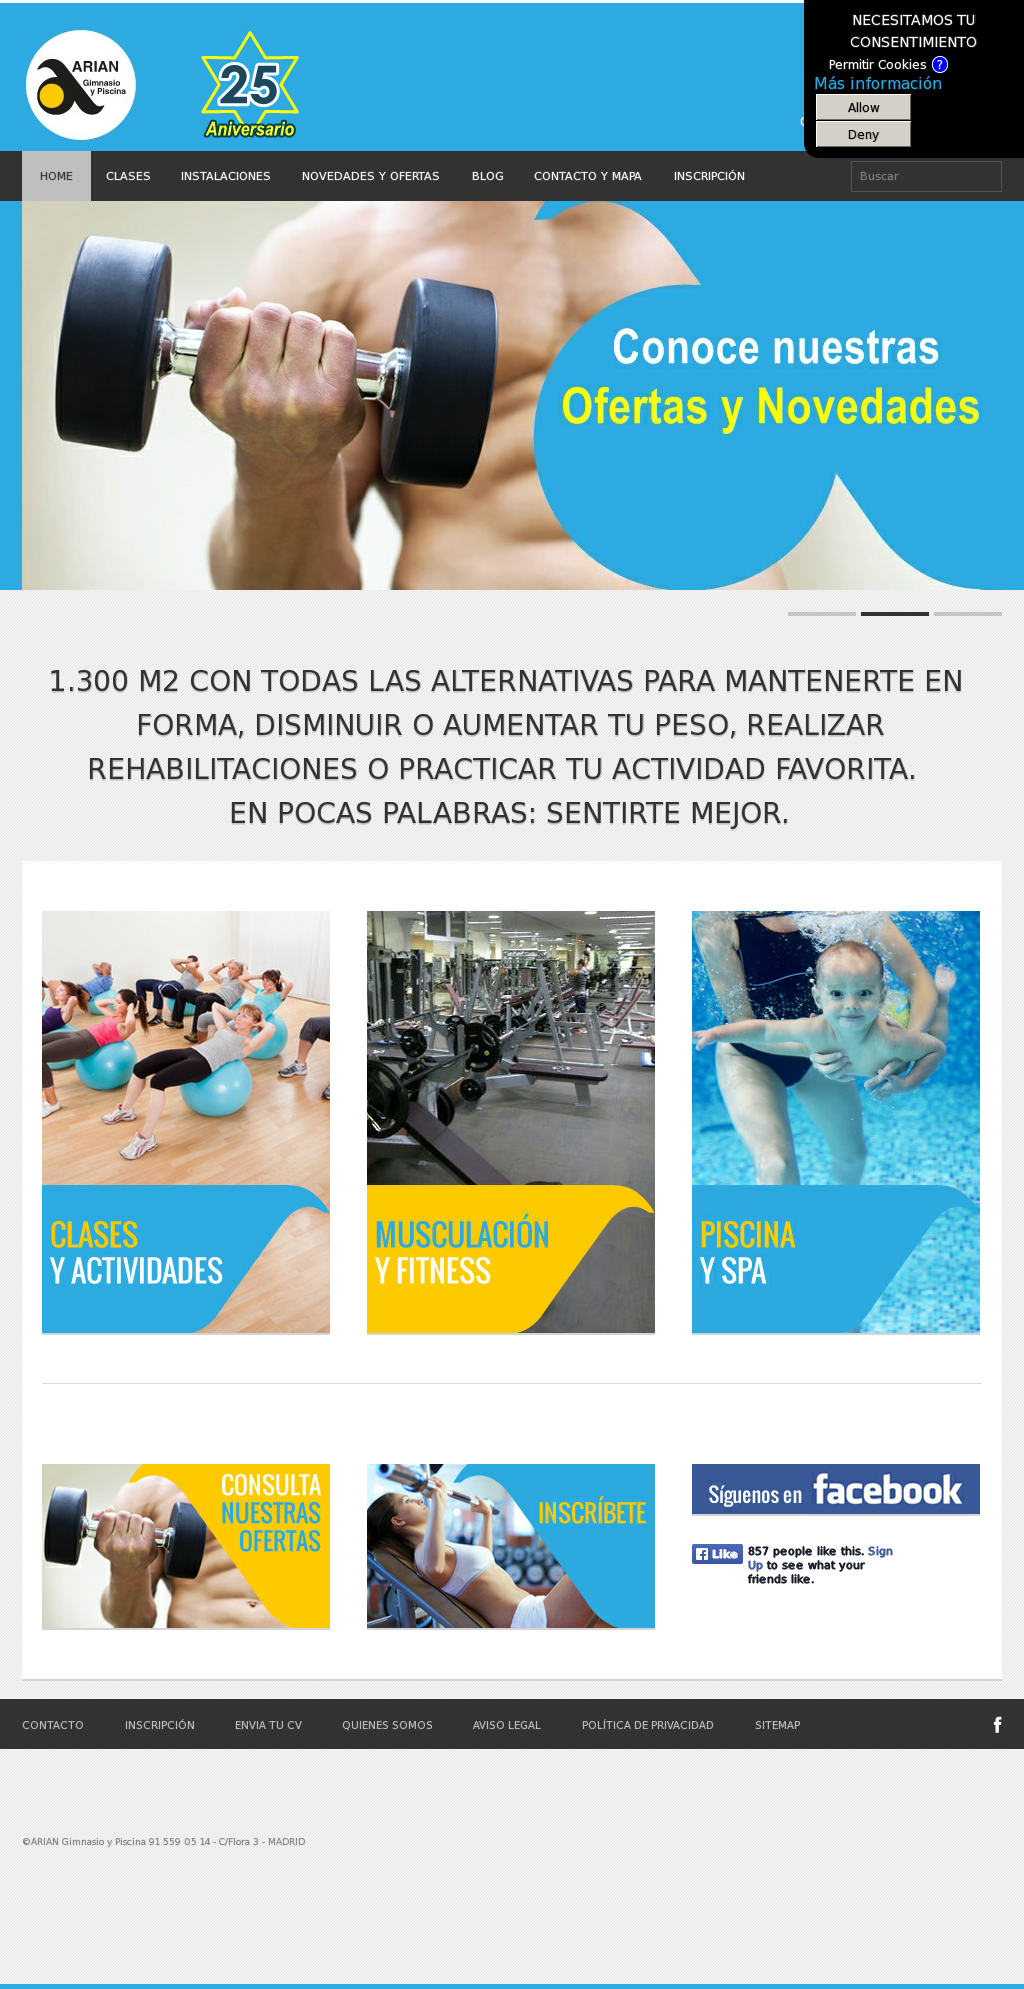 Gimnasio Arian Competitors Revenue And Employees Owler Company